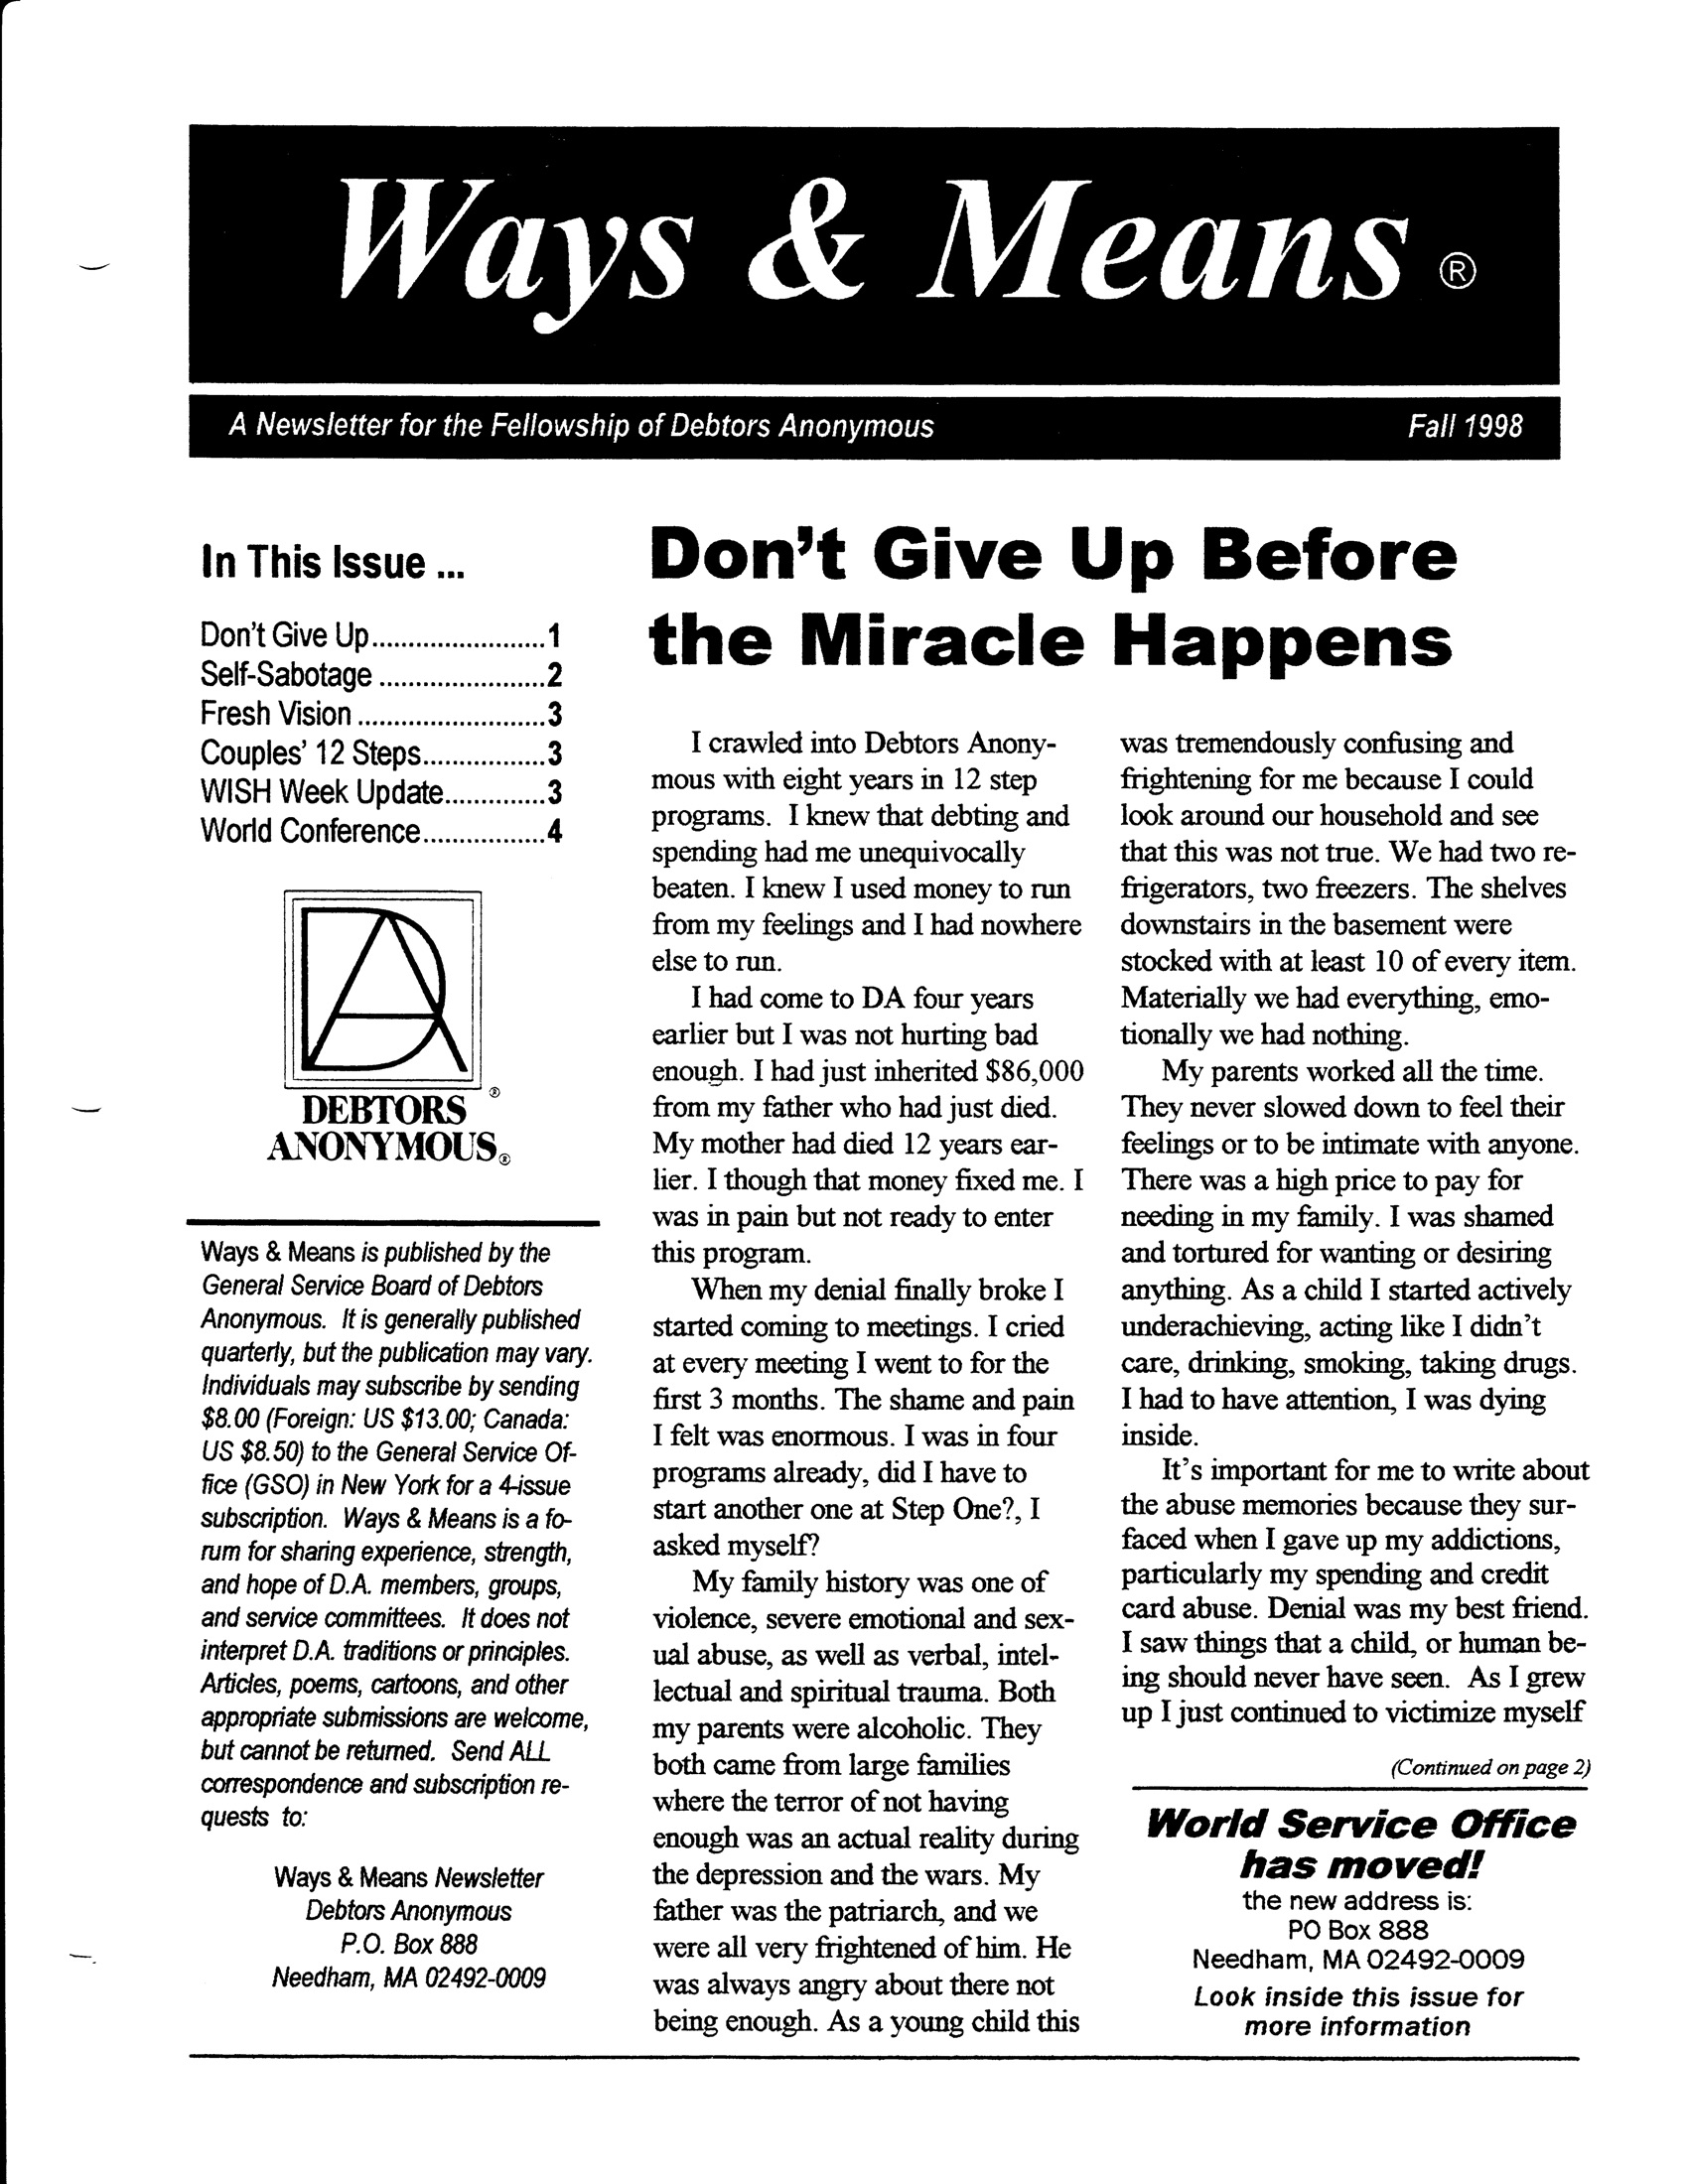 Ways & Means 4th QTR 1998